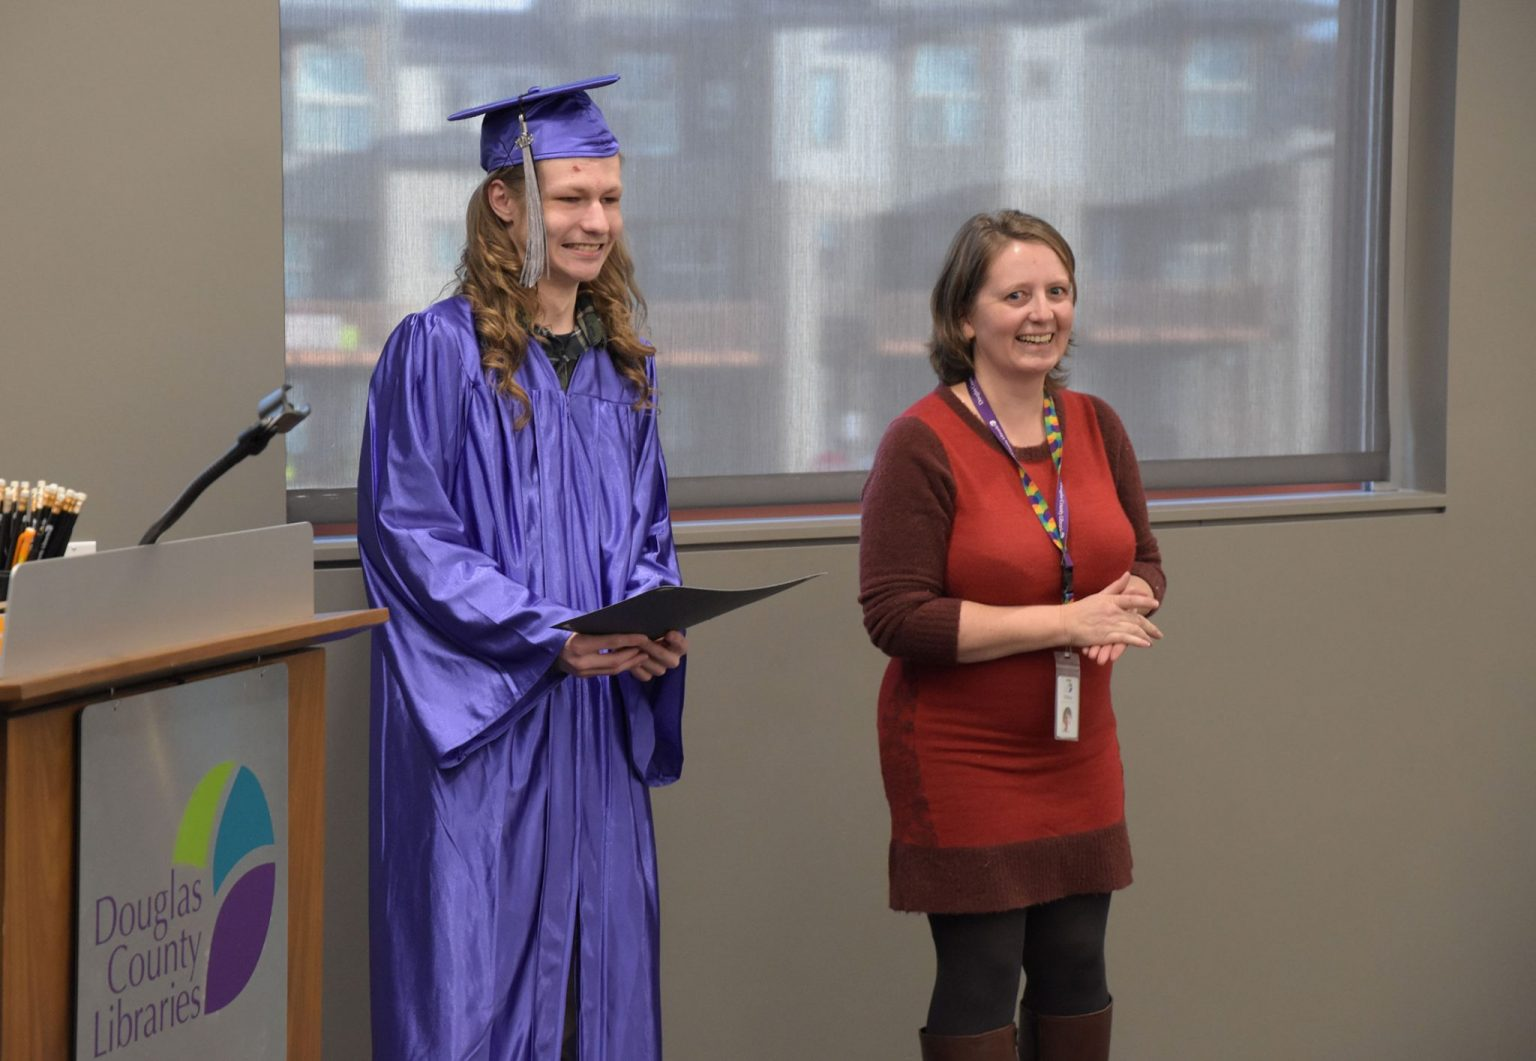 DCL Adult Literacy Specialist Tiffany Curtin recognizes the accomplishment of GED graduate Kobe Glimpse in 2018.